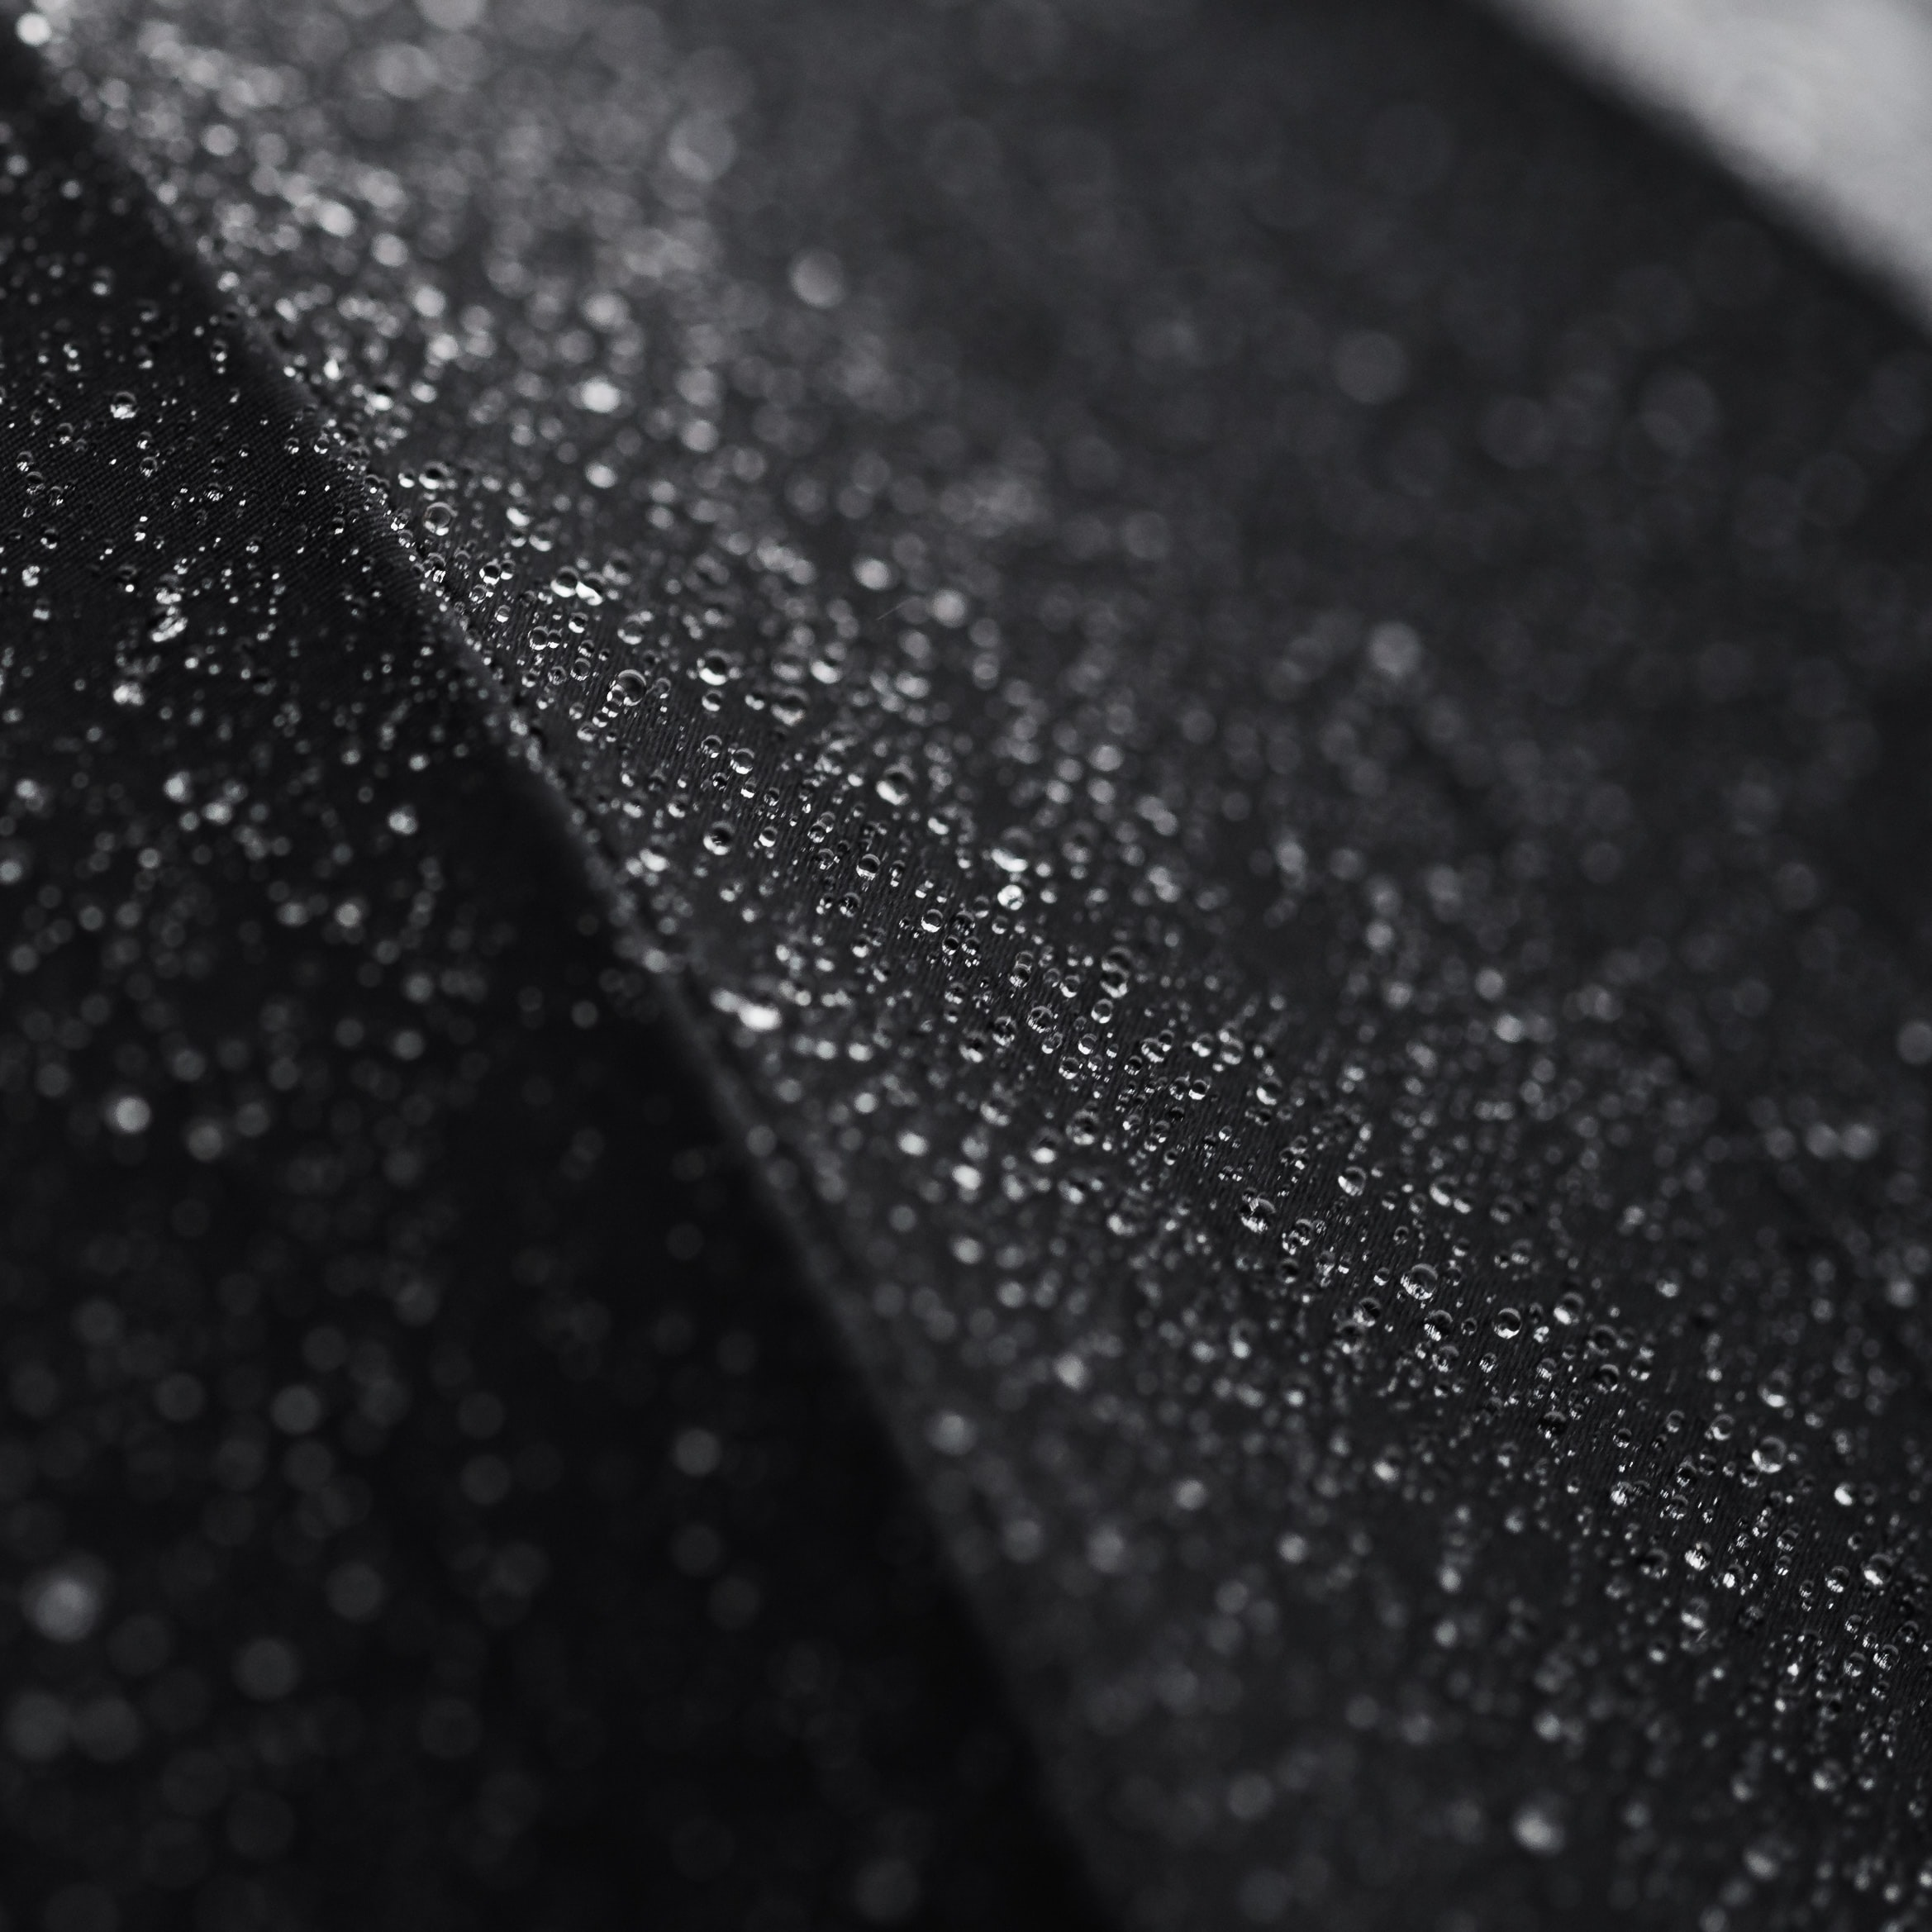 Macro shot of tiny droplets of water on a black surface